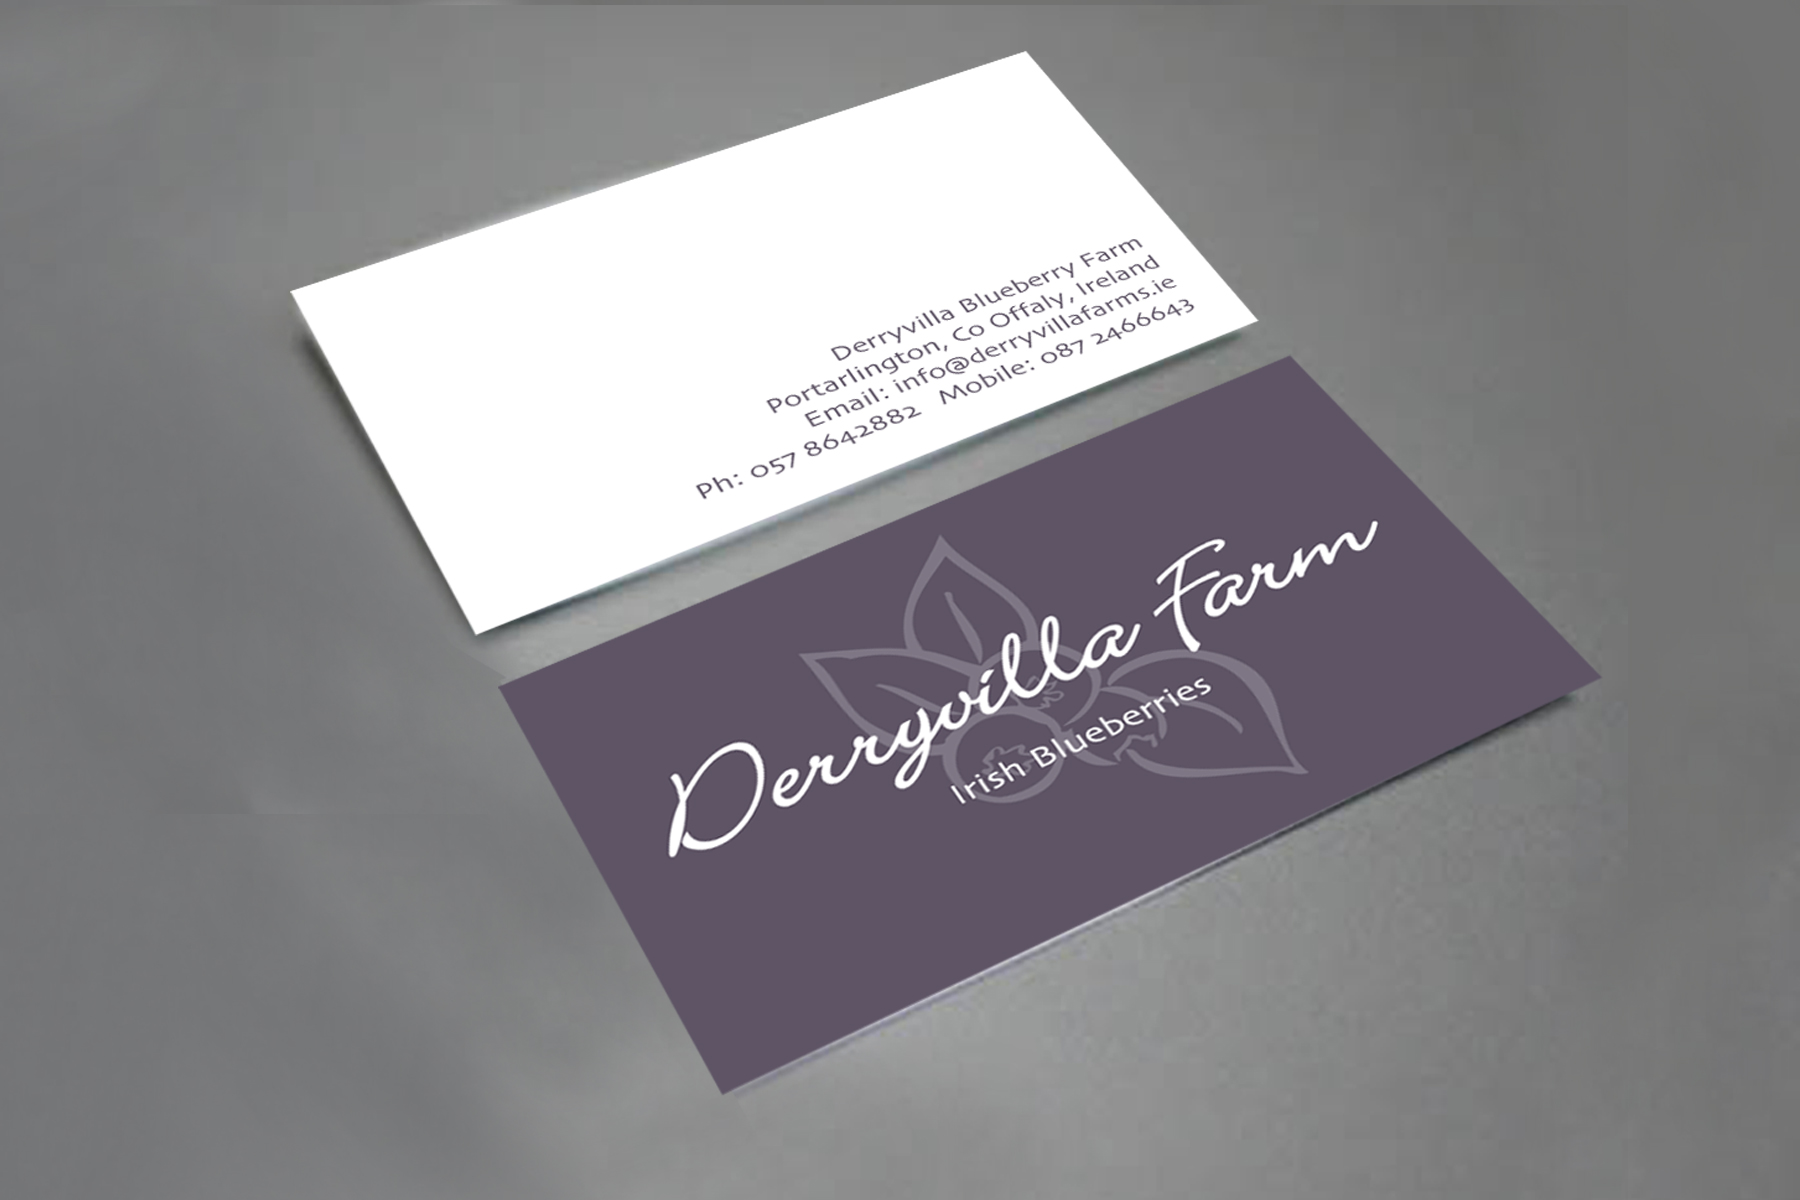 Derryvilla-Stationery-business-card.jpg